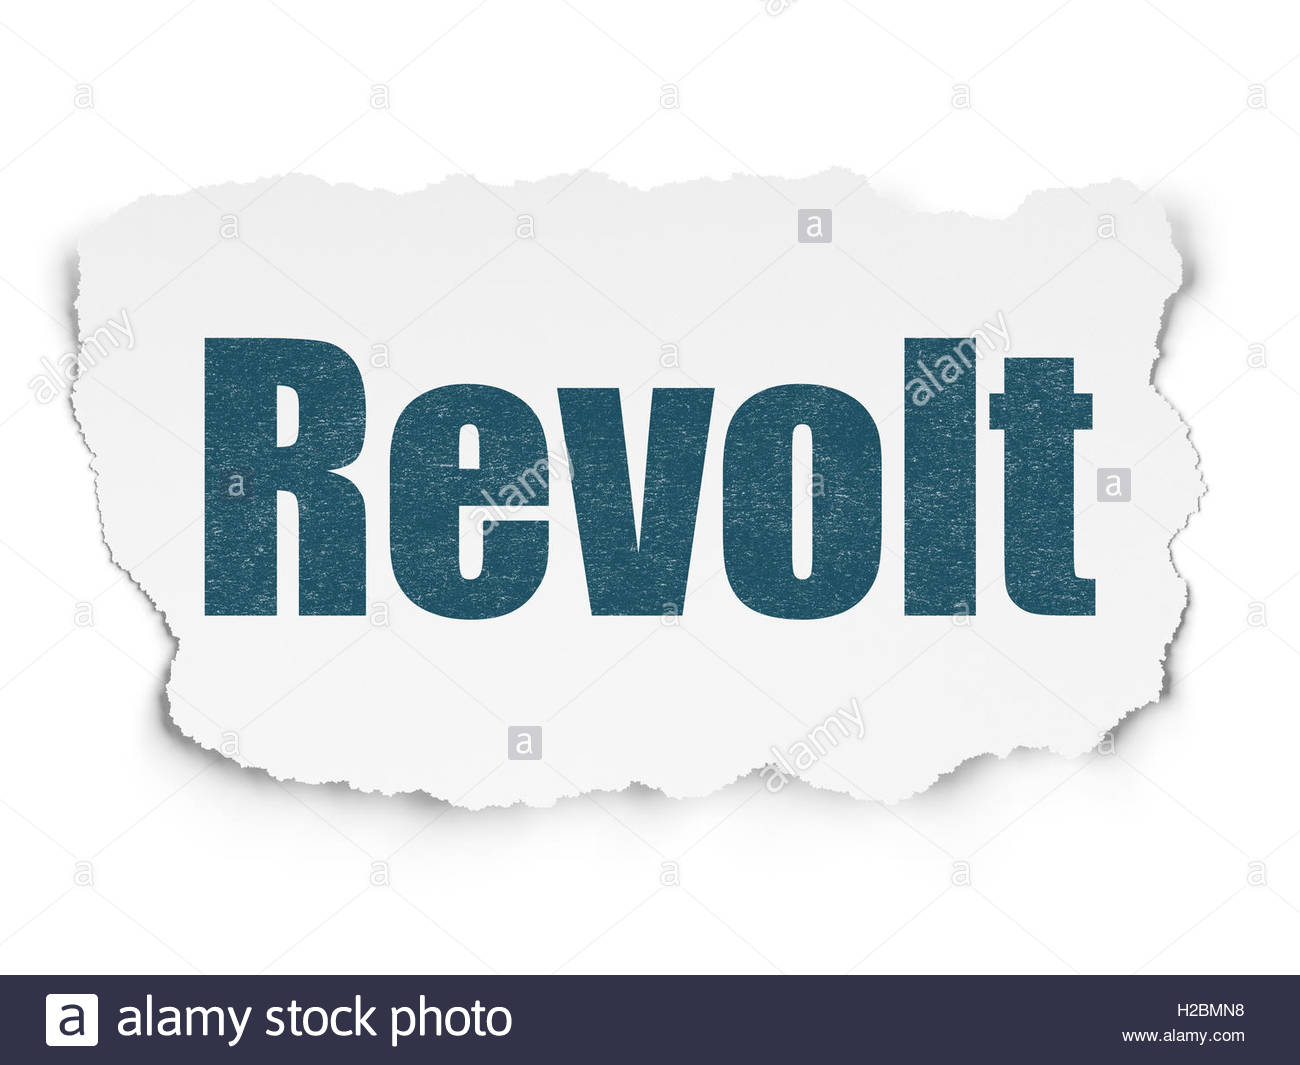 Political concept Revolt on Torn Paper background Stock Photo 1300x1065